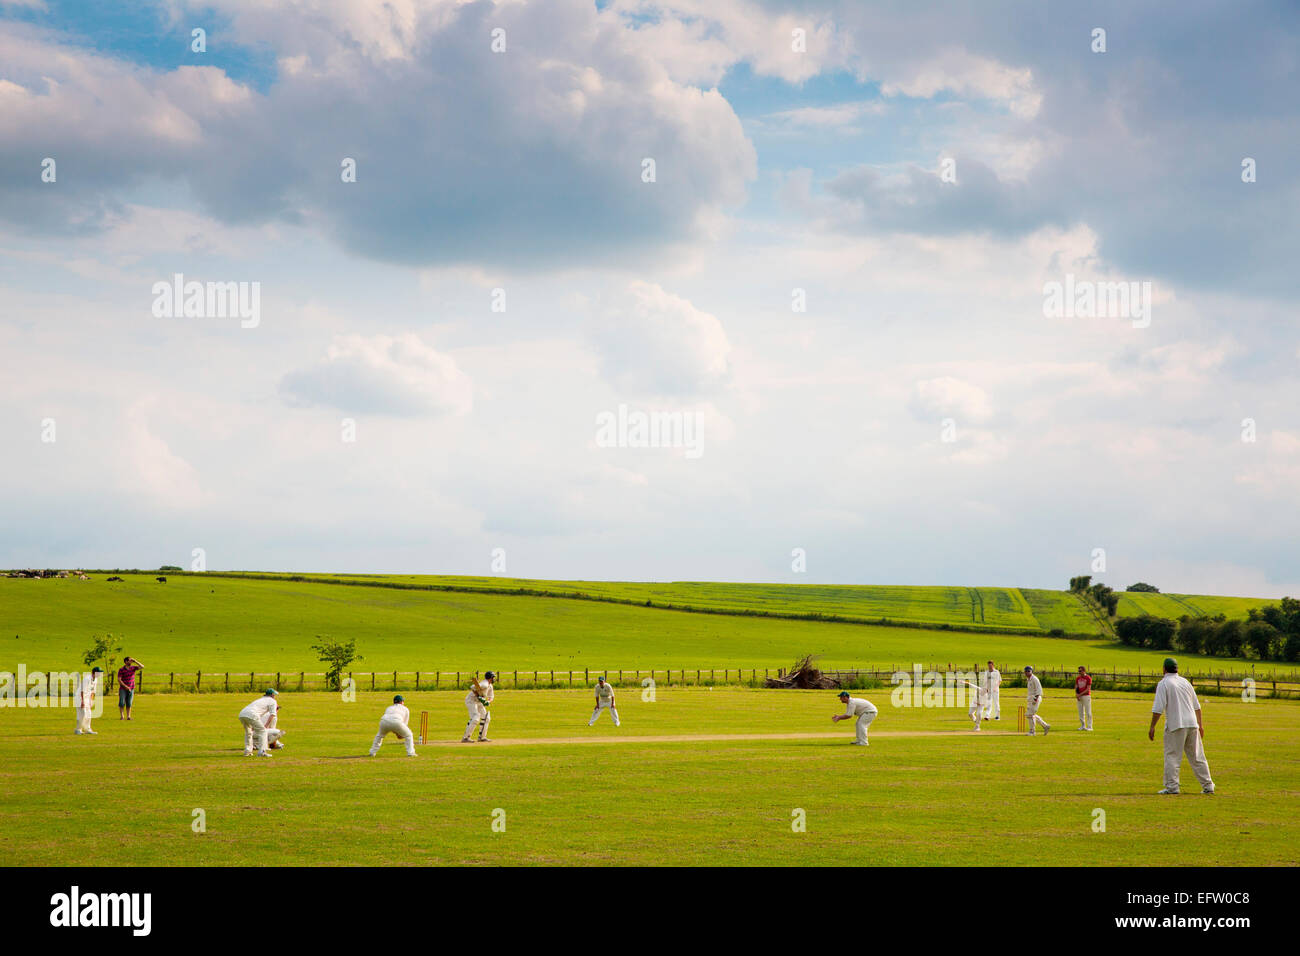 Rural scene with view cricket players playing cricket match on cricket field Stock Photo